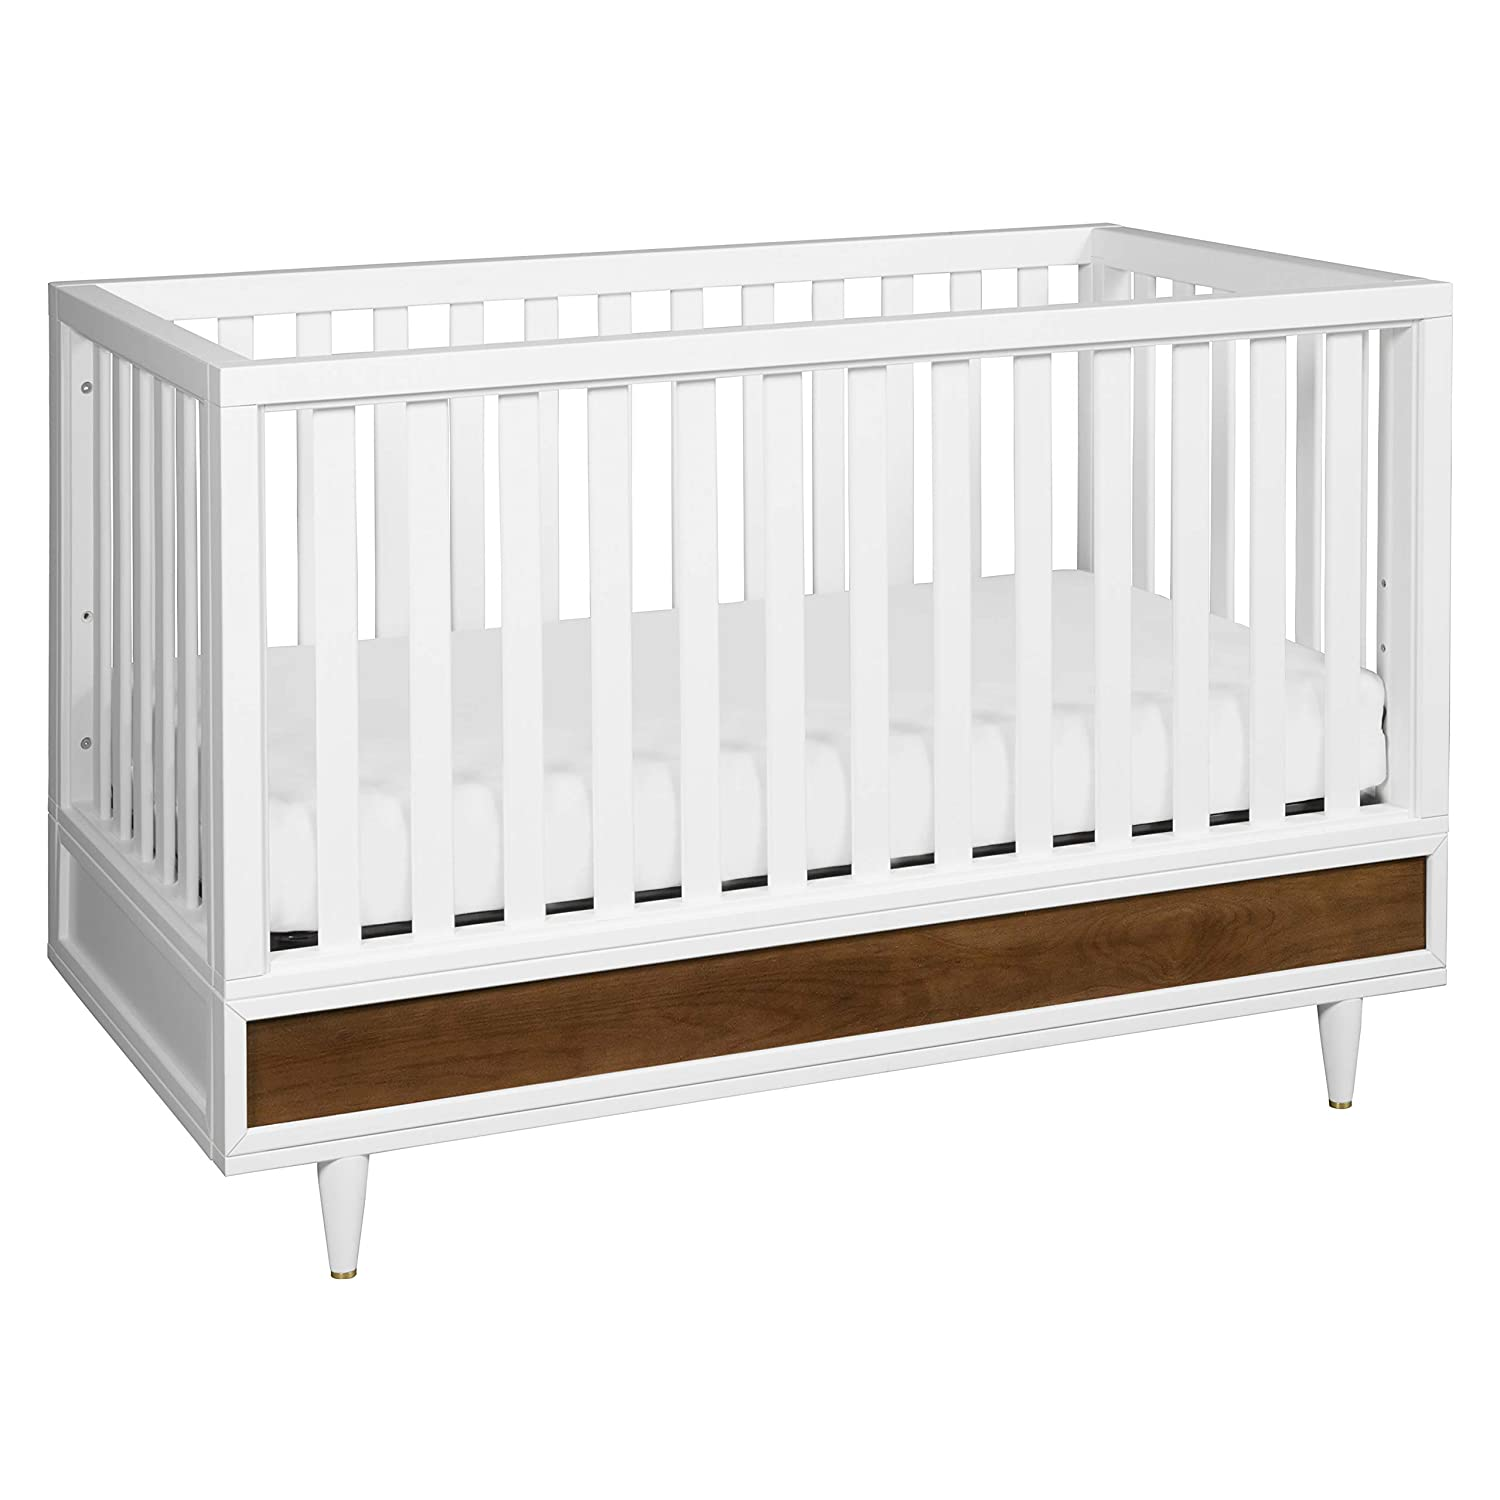 Babyletto Eero 4-in-1 Omaha Mall Convertible Crib Bed Conversi Toddler with cheap